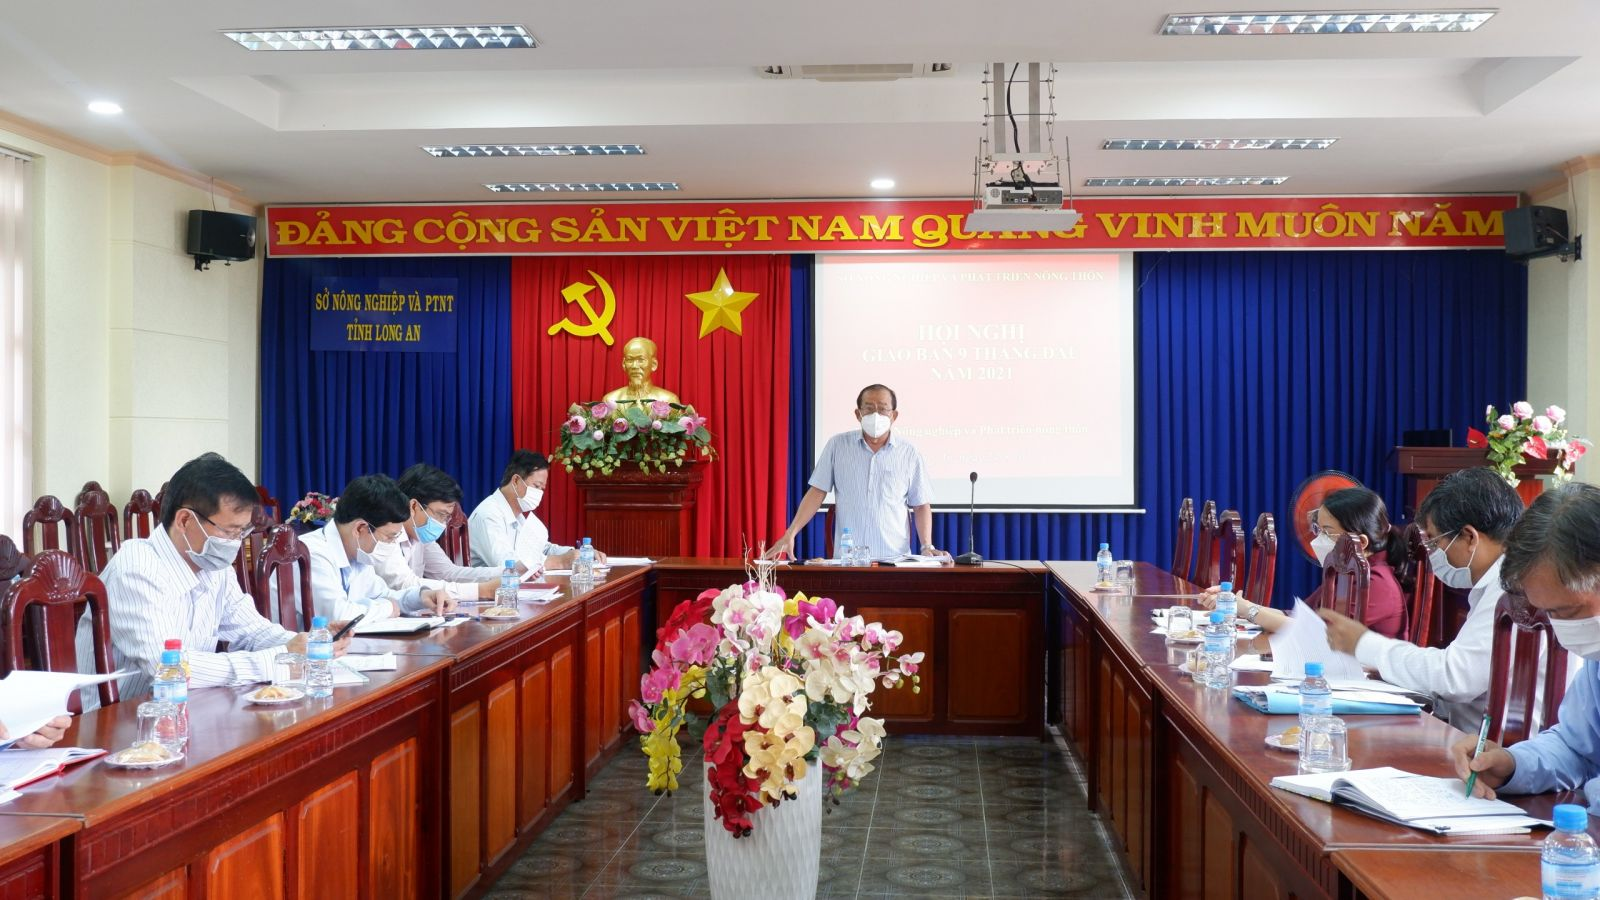 Director of DARD - Nguyen Thanh Truyen chairs the conference